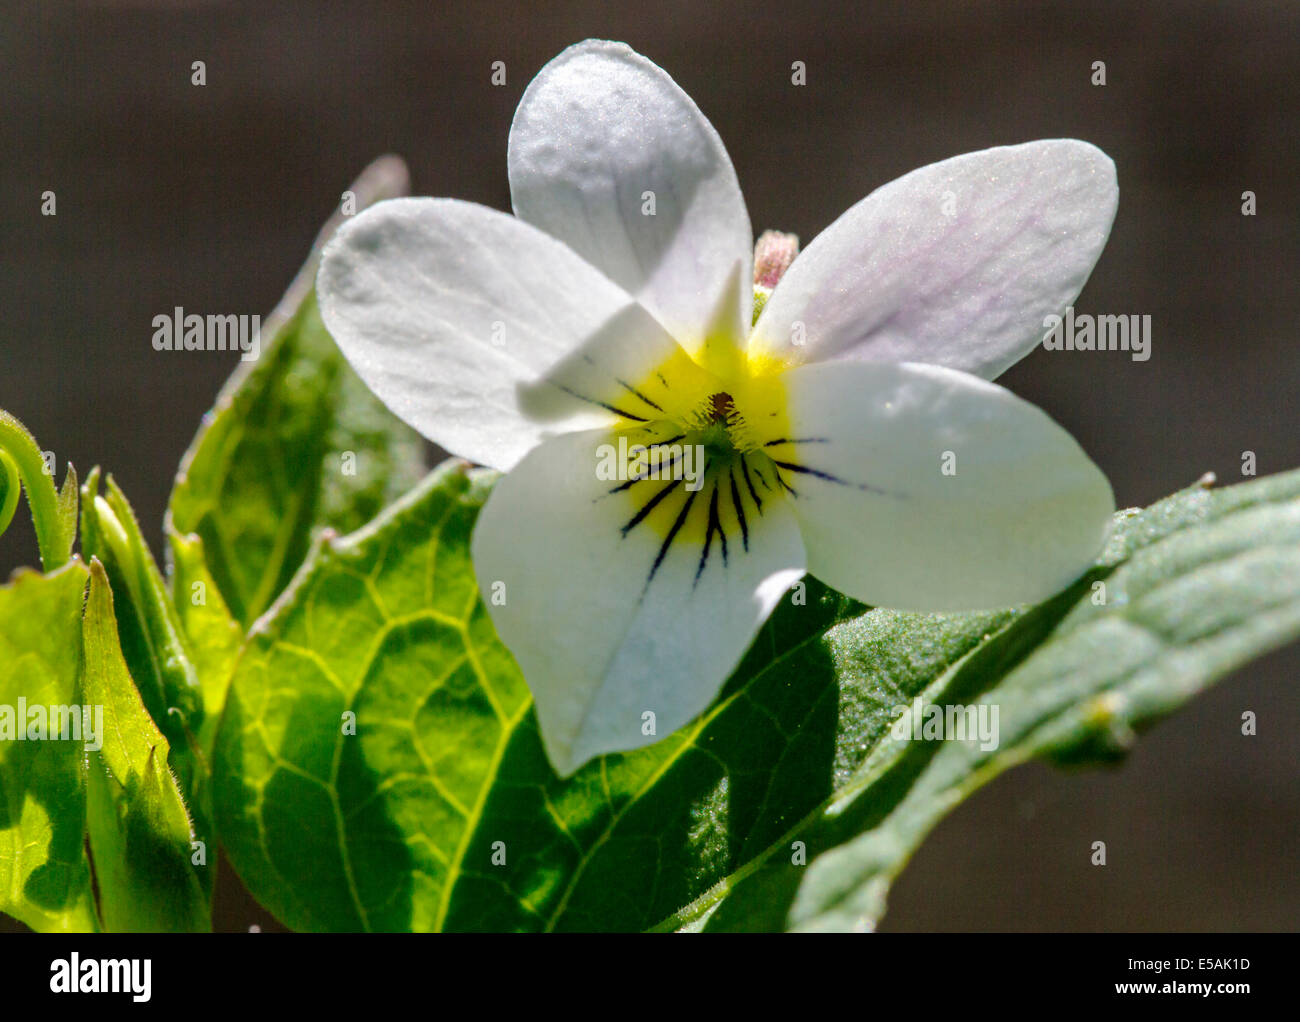 Viola canadensis; scopulorum; Viola scopulorum; White Violet; Violaceae; Violet Family; wildflowers in bloom, Central Stock Photo